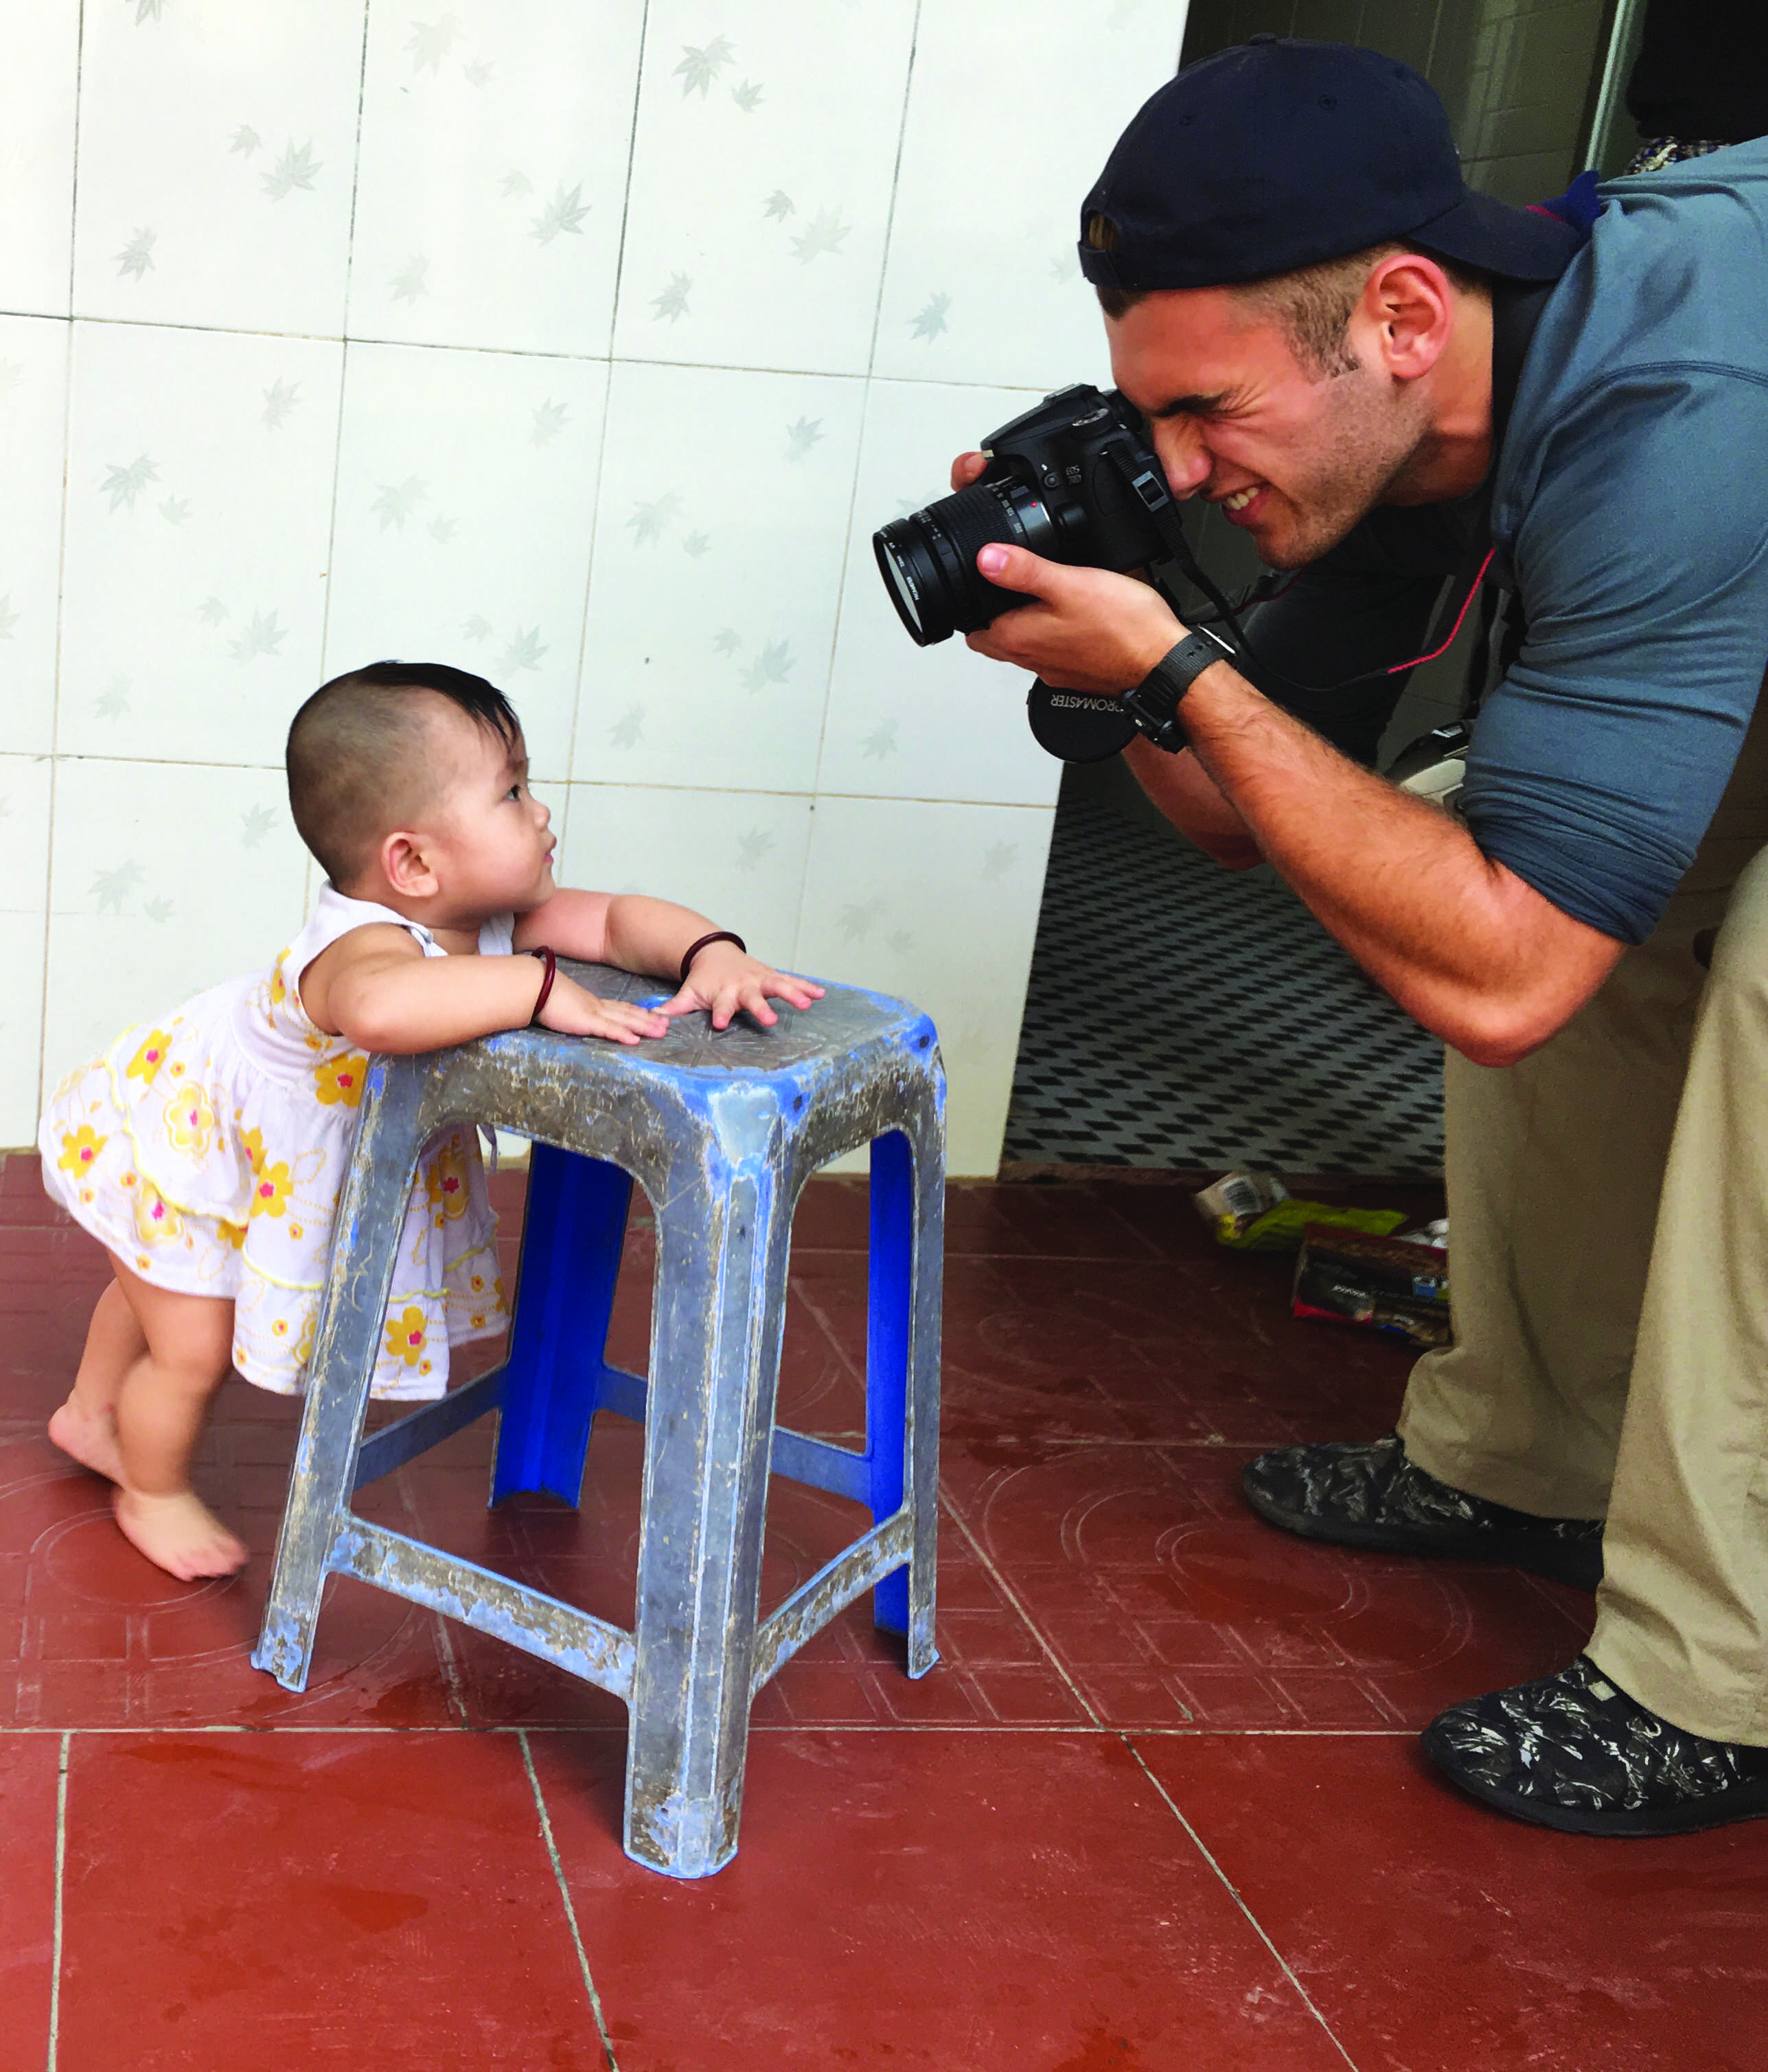 CAM AND HIS CAM: Cameron Welther '17 photographs an infant at a Buddhist orphanage just outside of Saigon. Welther and 15 other students handed out toys and played with the children there. The orphanage was one of the many sites in Vietnam that the students who were on the Digital Storytelling Adventure trip visited. Credit: Lauren Kim/Chronicle